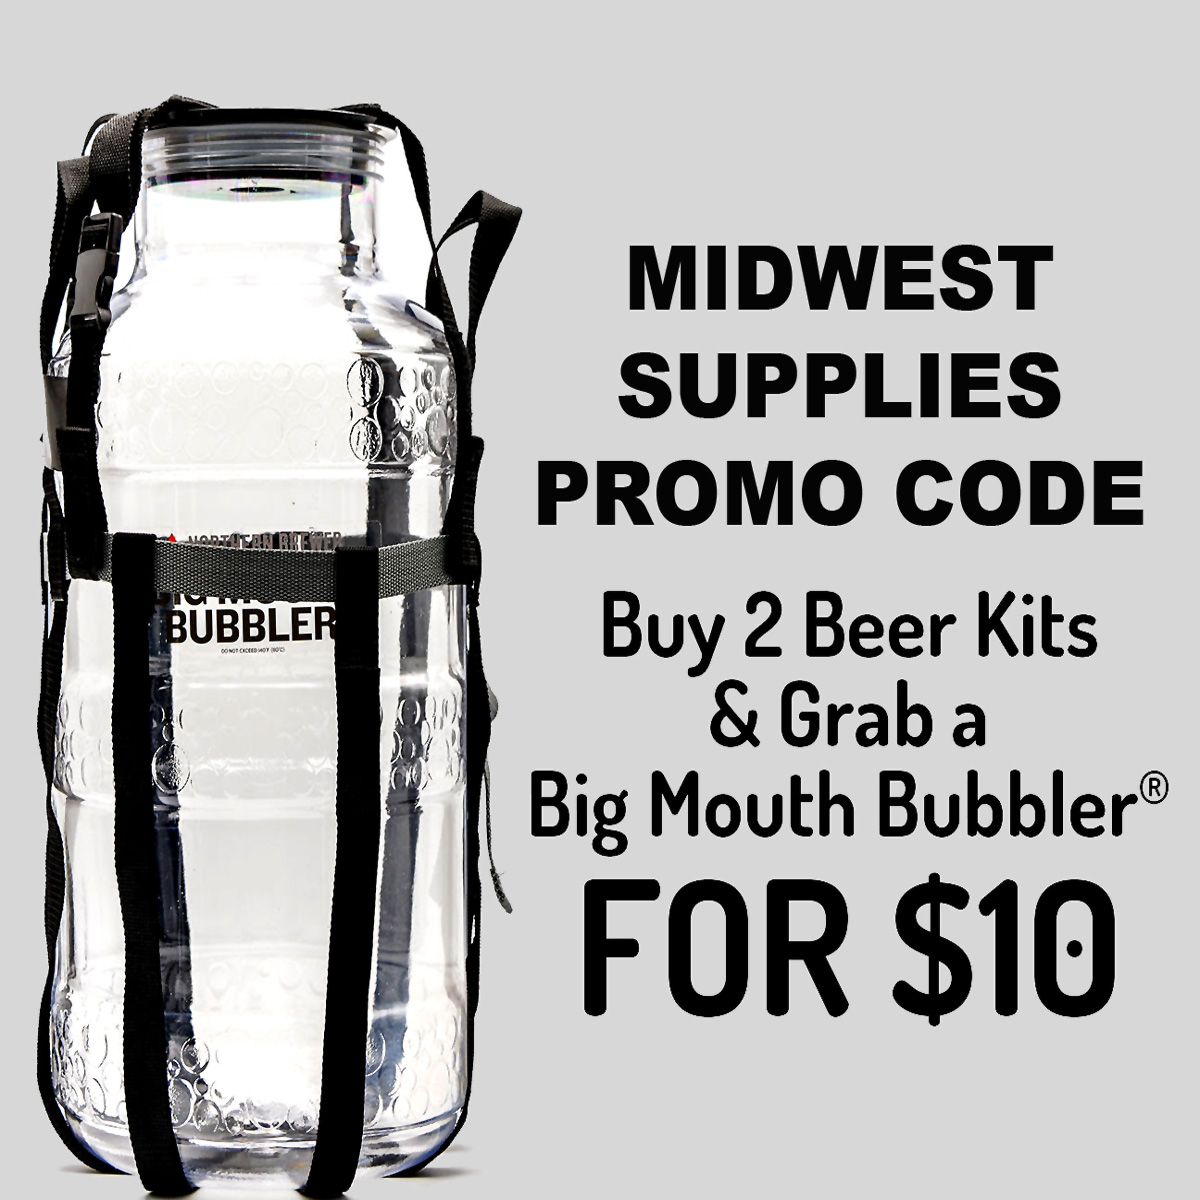 Midwest Supplies Buy 2 Beer Kits and get a Free Fermenter Coupon Code for MidwestSupplies.com Coupon Code